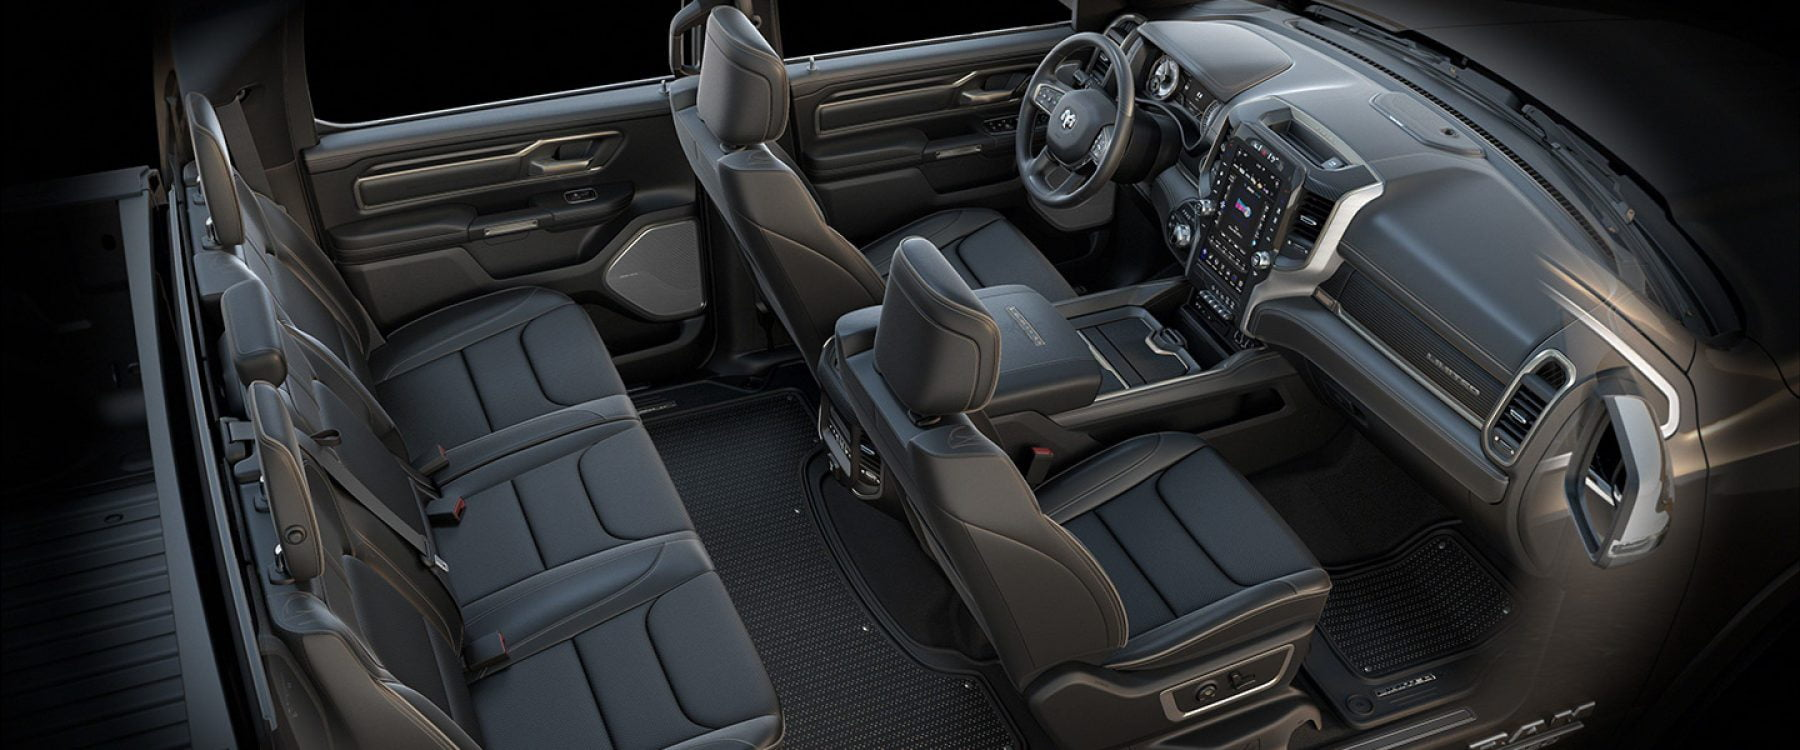 All-new 2019 Dodge Ram 1500 Limited | American Pickup ...